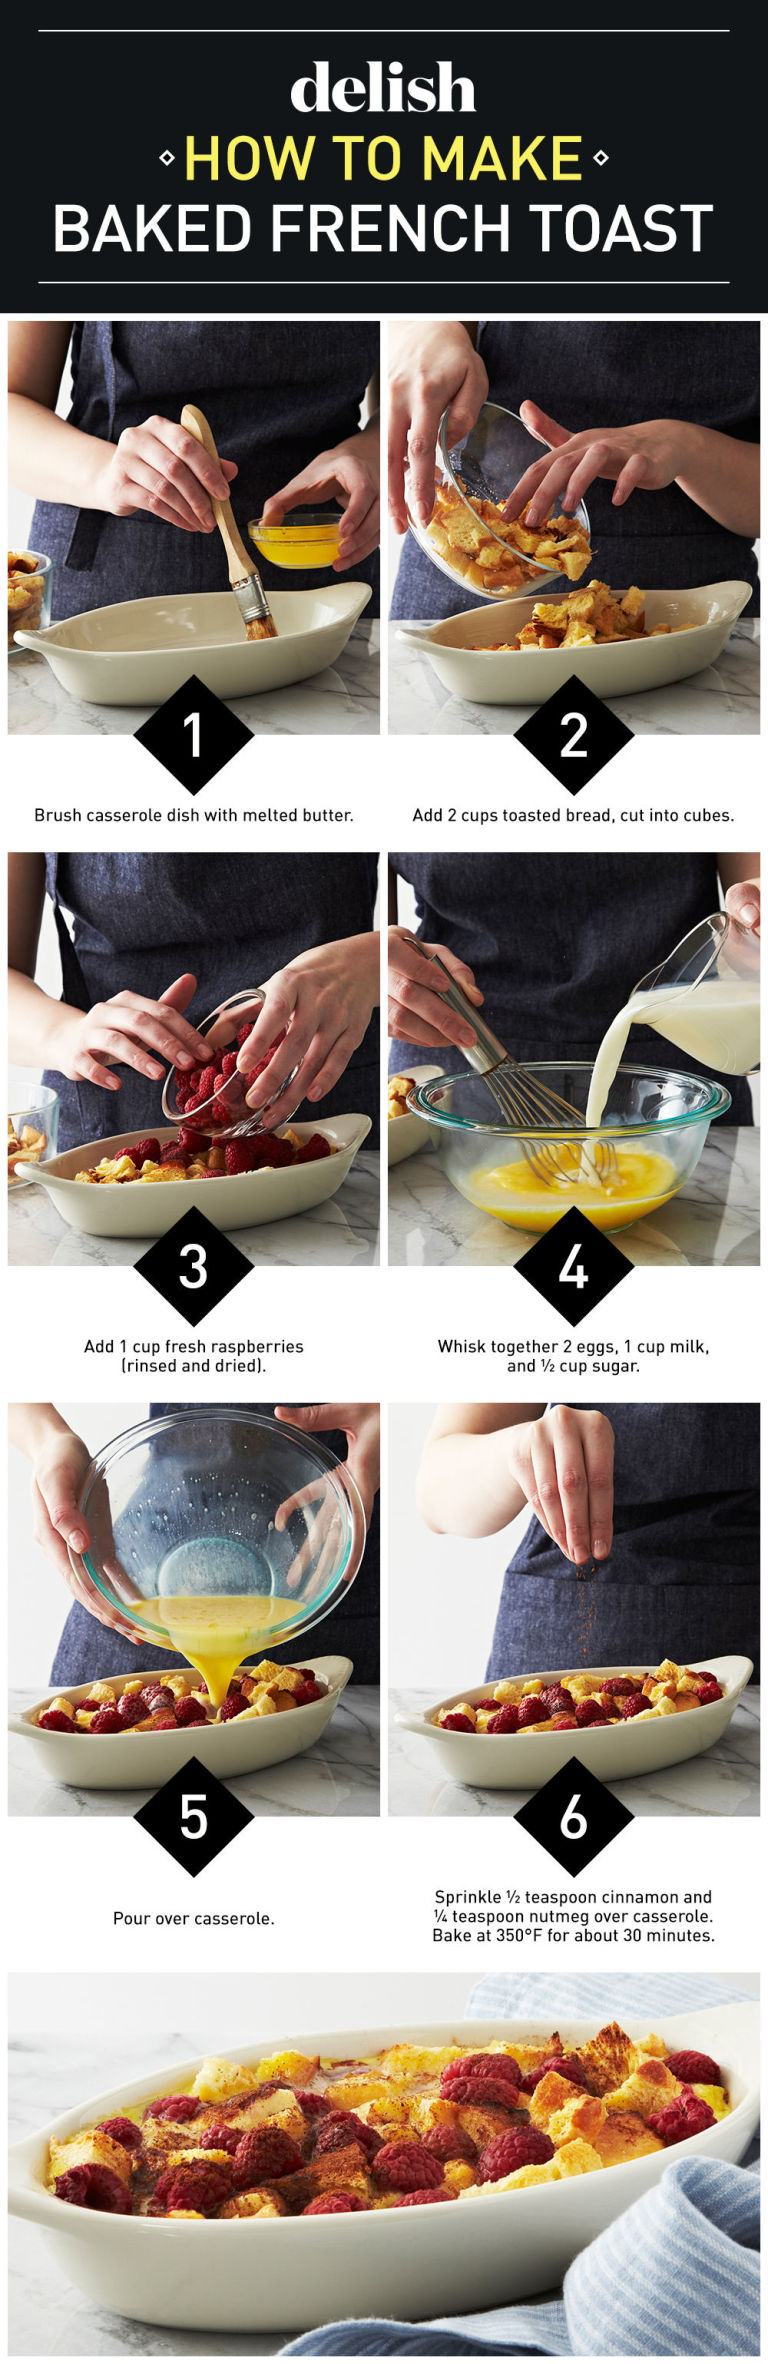 French Toast Bake Step By Step